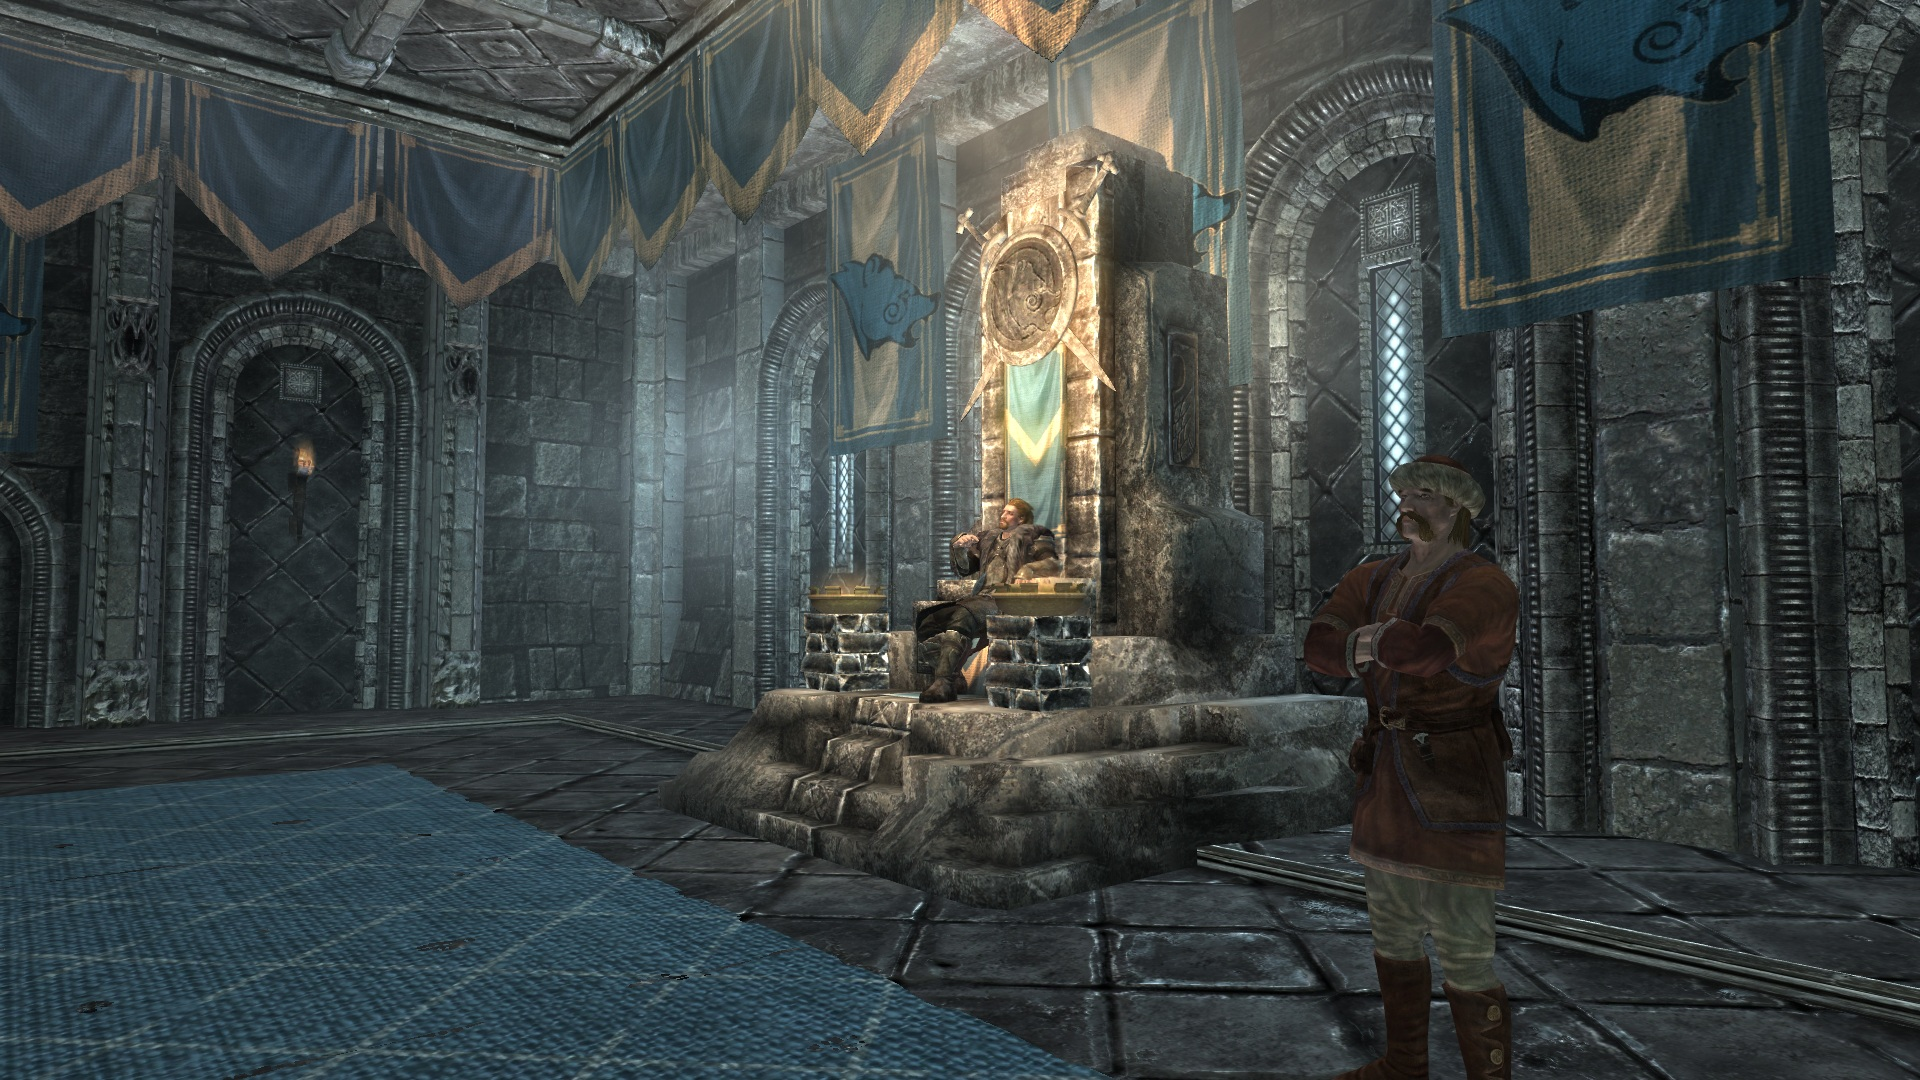 Imagen - Throne Room with Jarl.jpg | Elder Scrolls ...